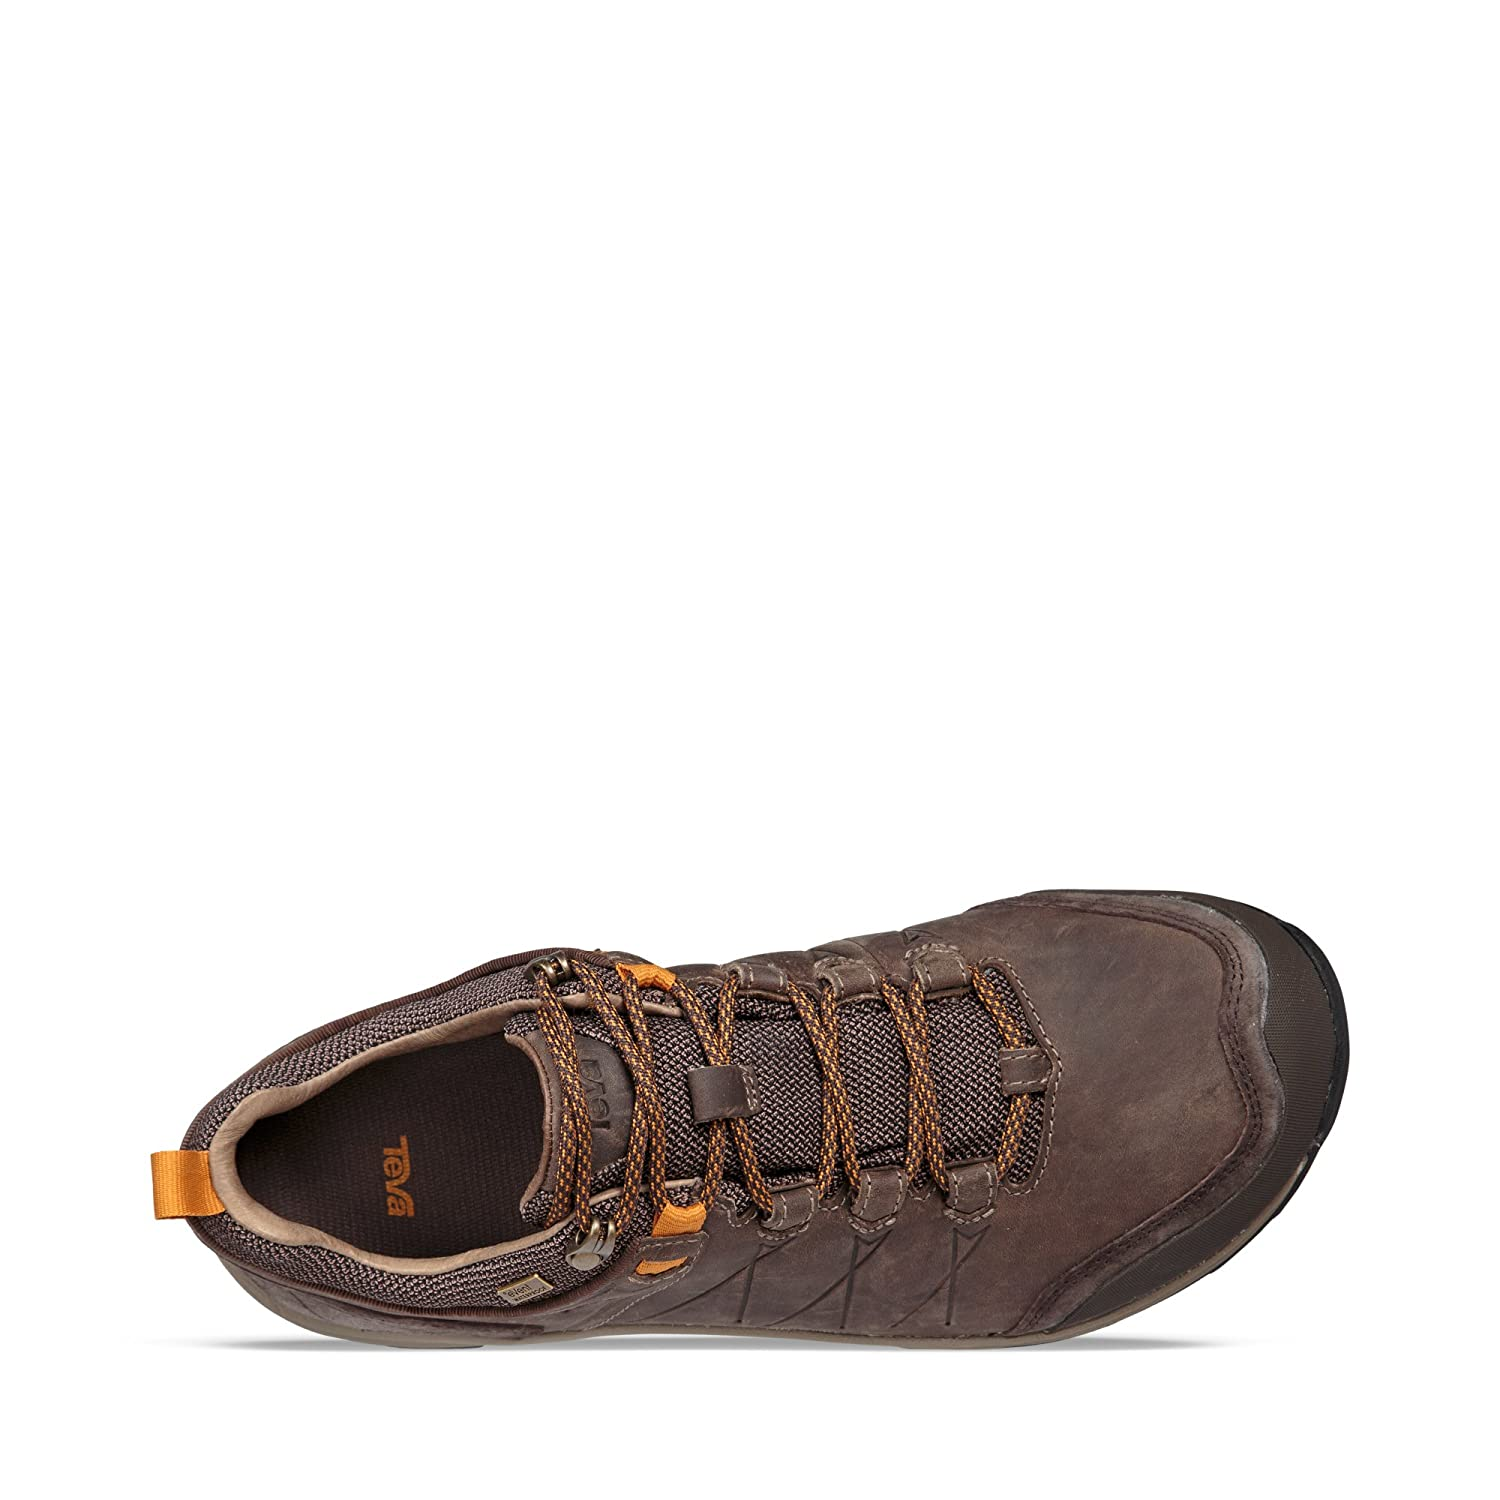 Teva - Arrowood Riva D Wp - Men B01MQXSJVQ 13 D Riva US|Walnut 6773ac